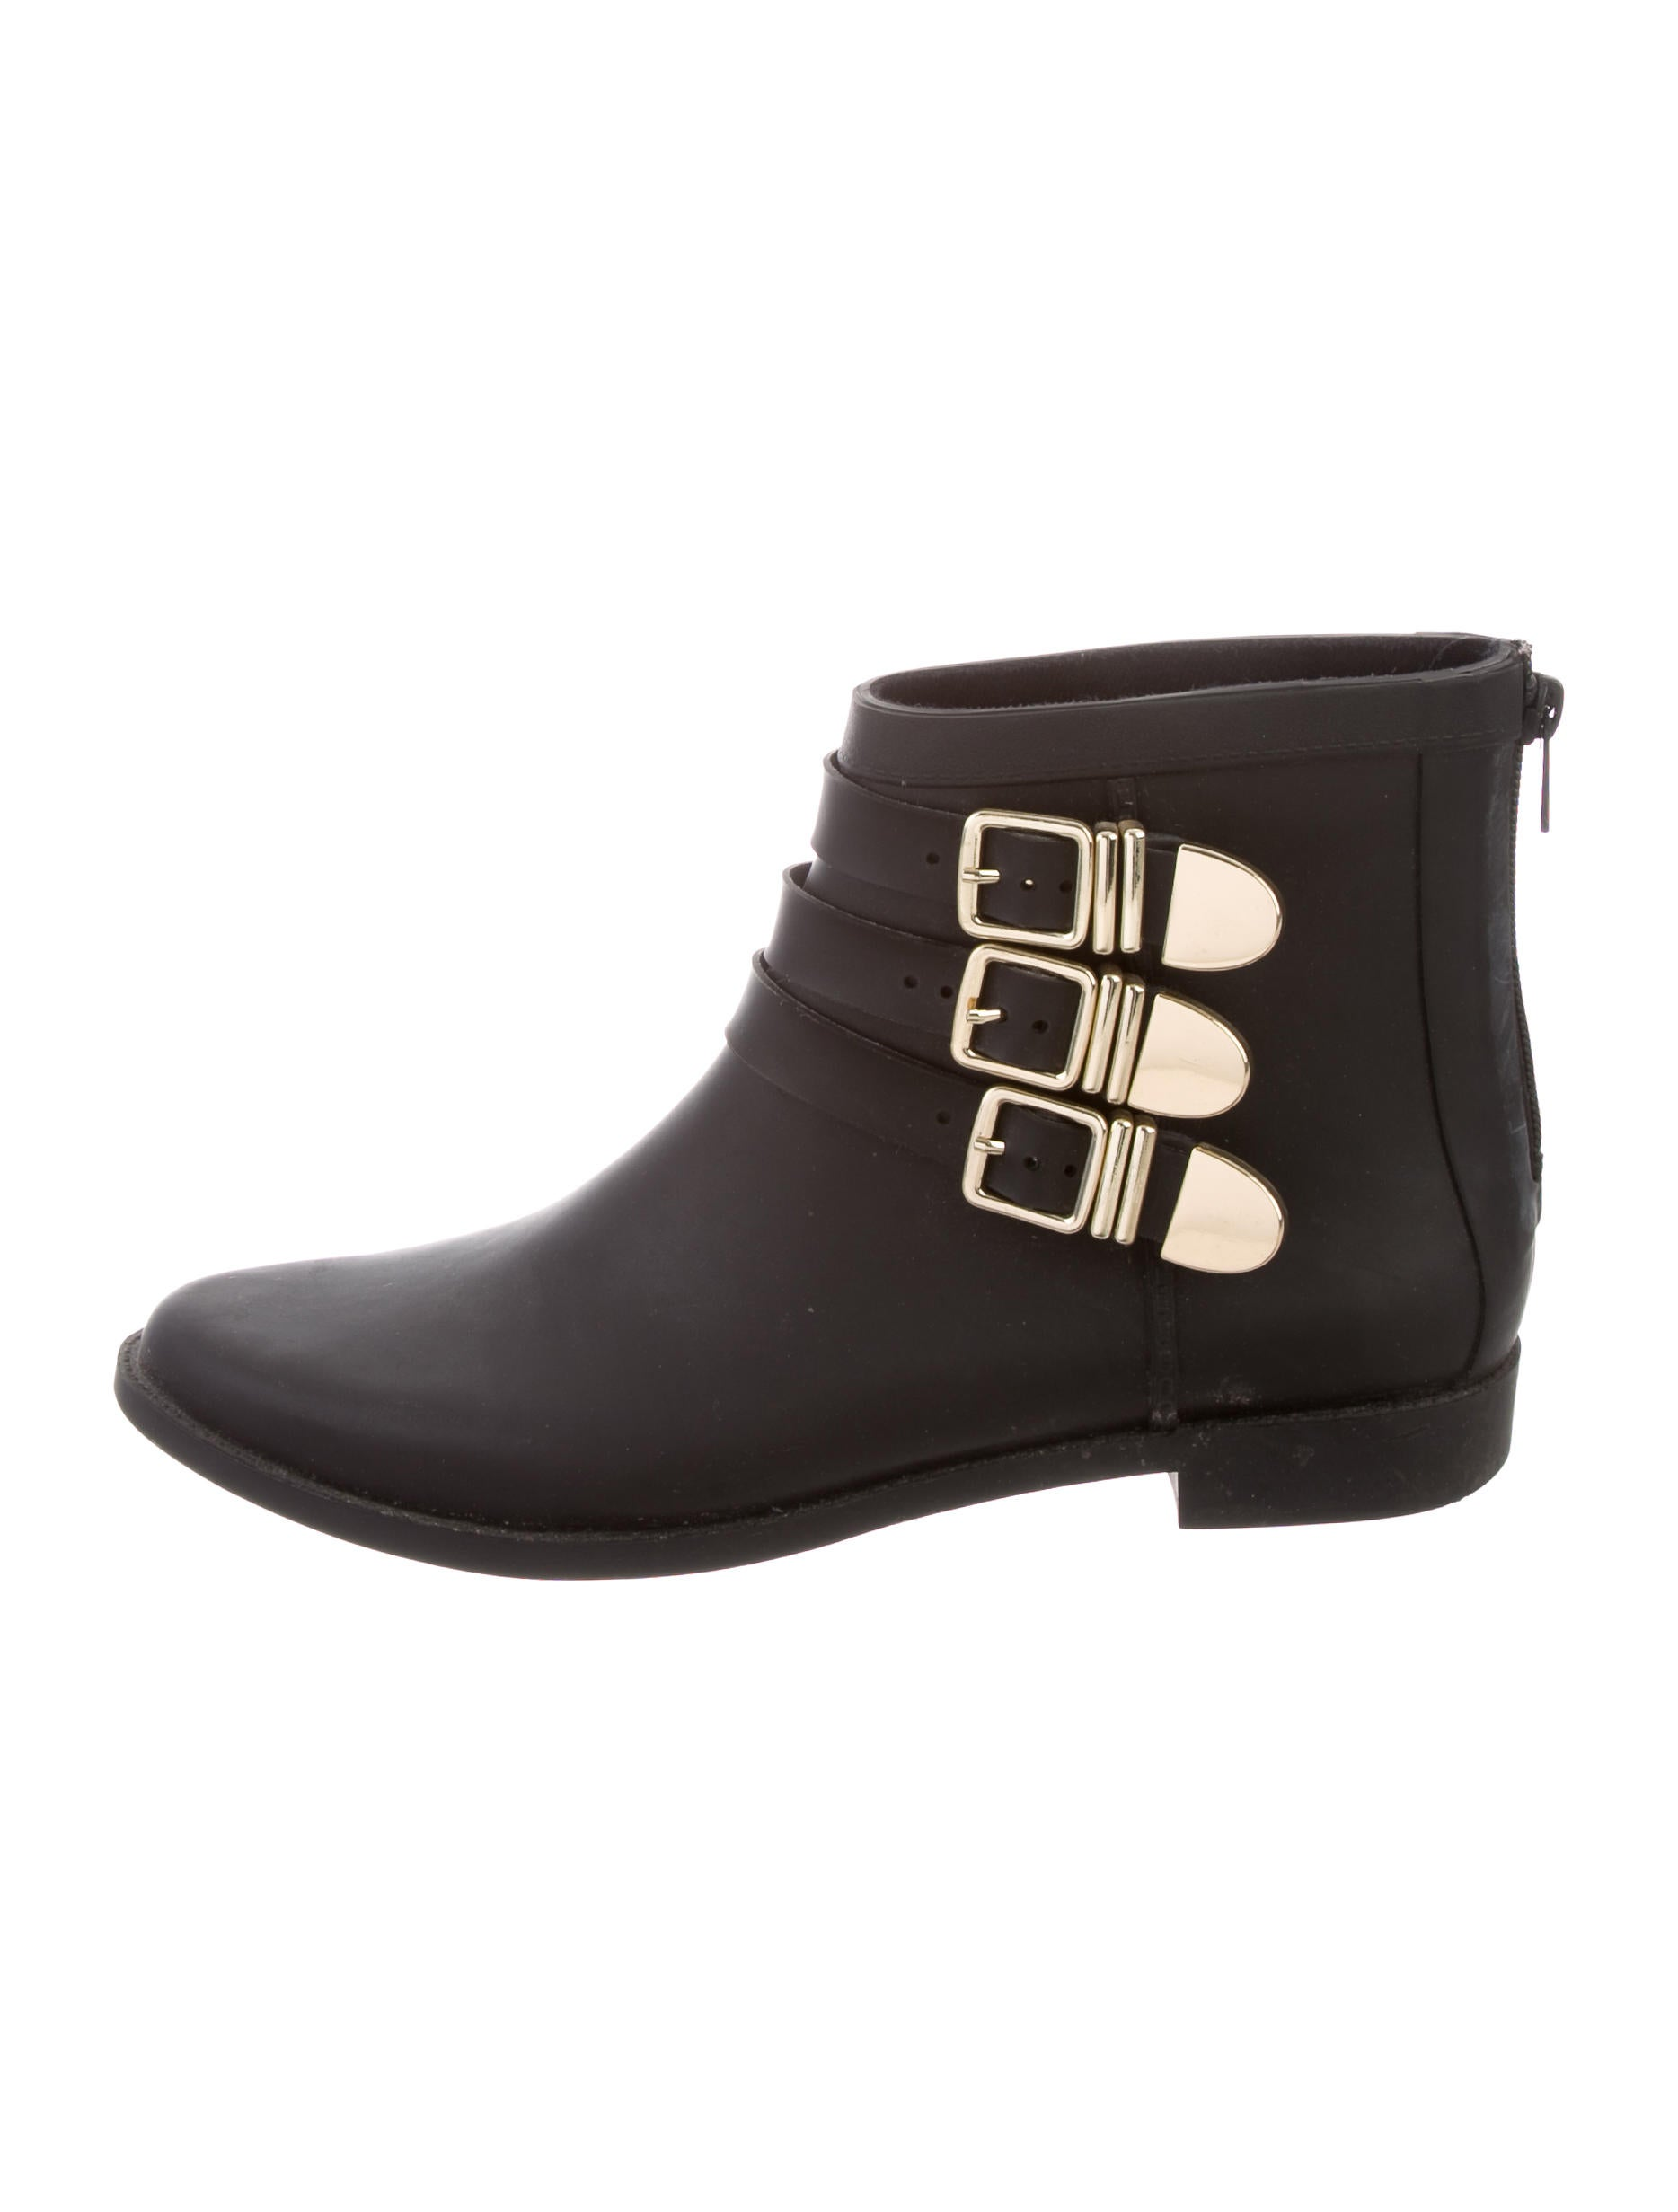 Loeffler Randall Buckle-Accented Rain Boots outlet ebay pictures cheap online free shipping many kinds of shop offer PCJUlegXbn